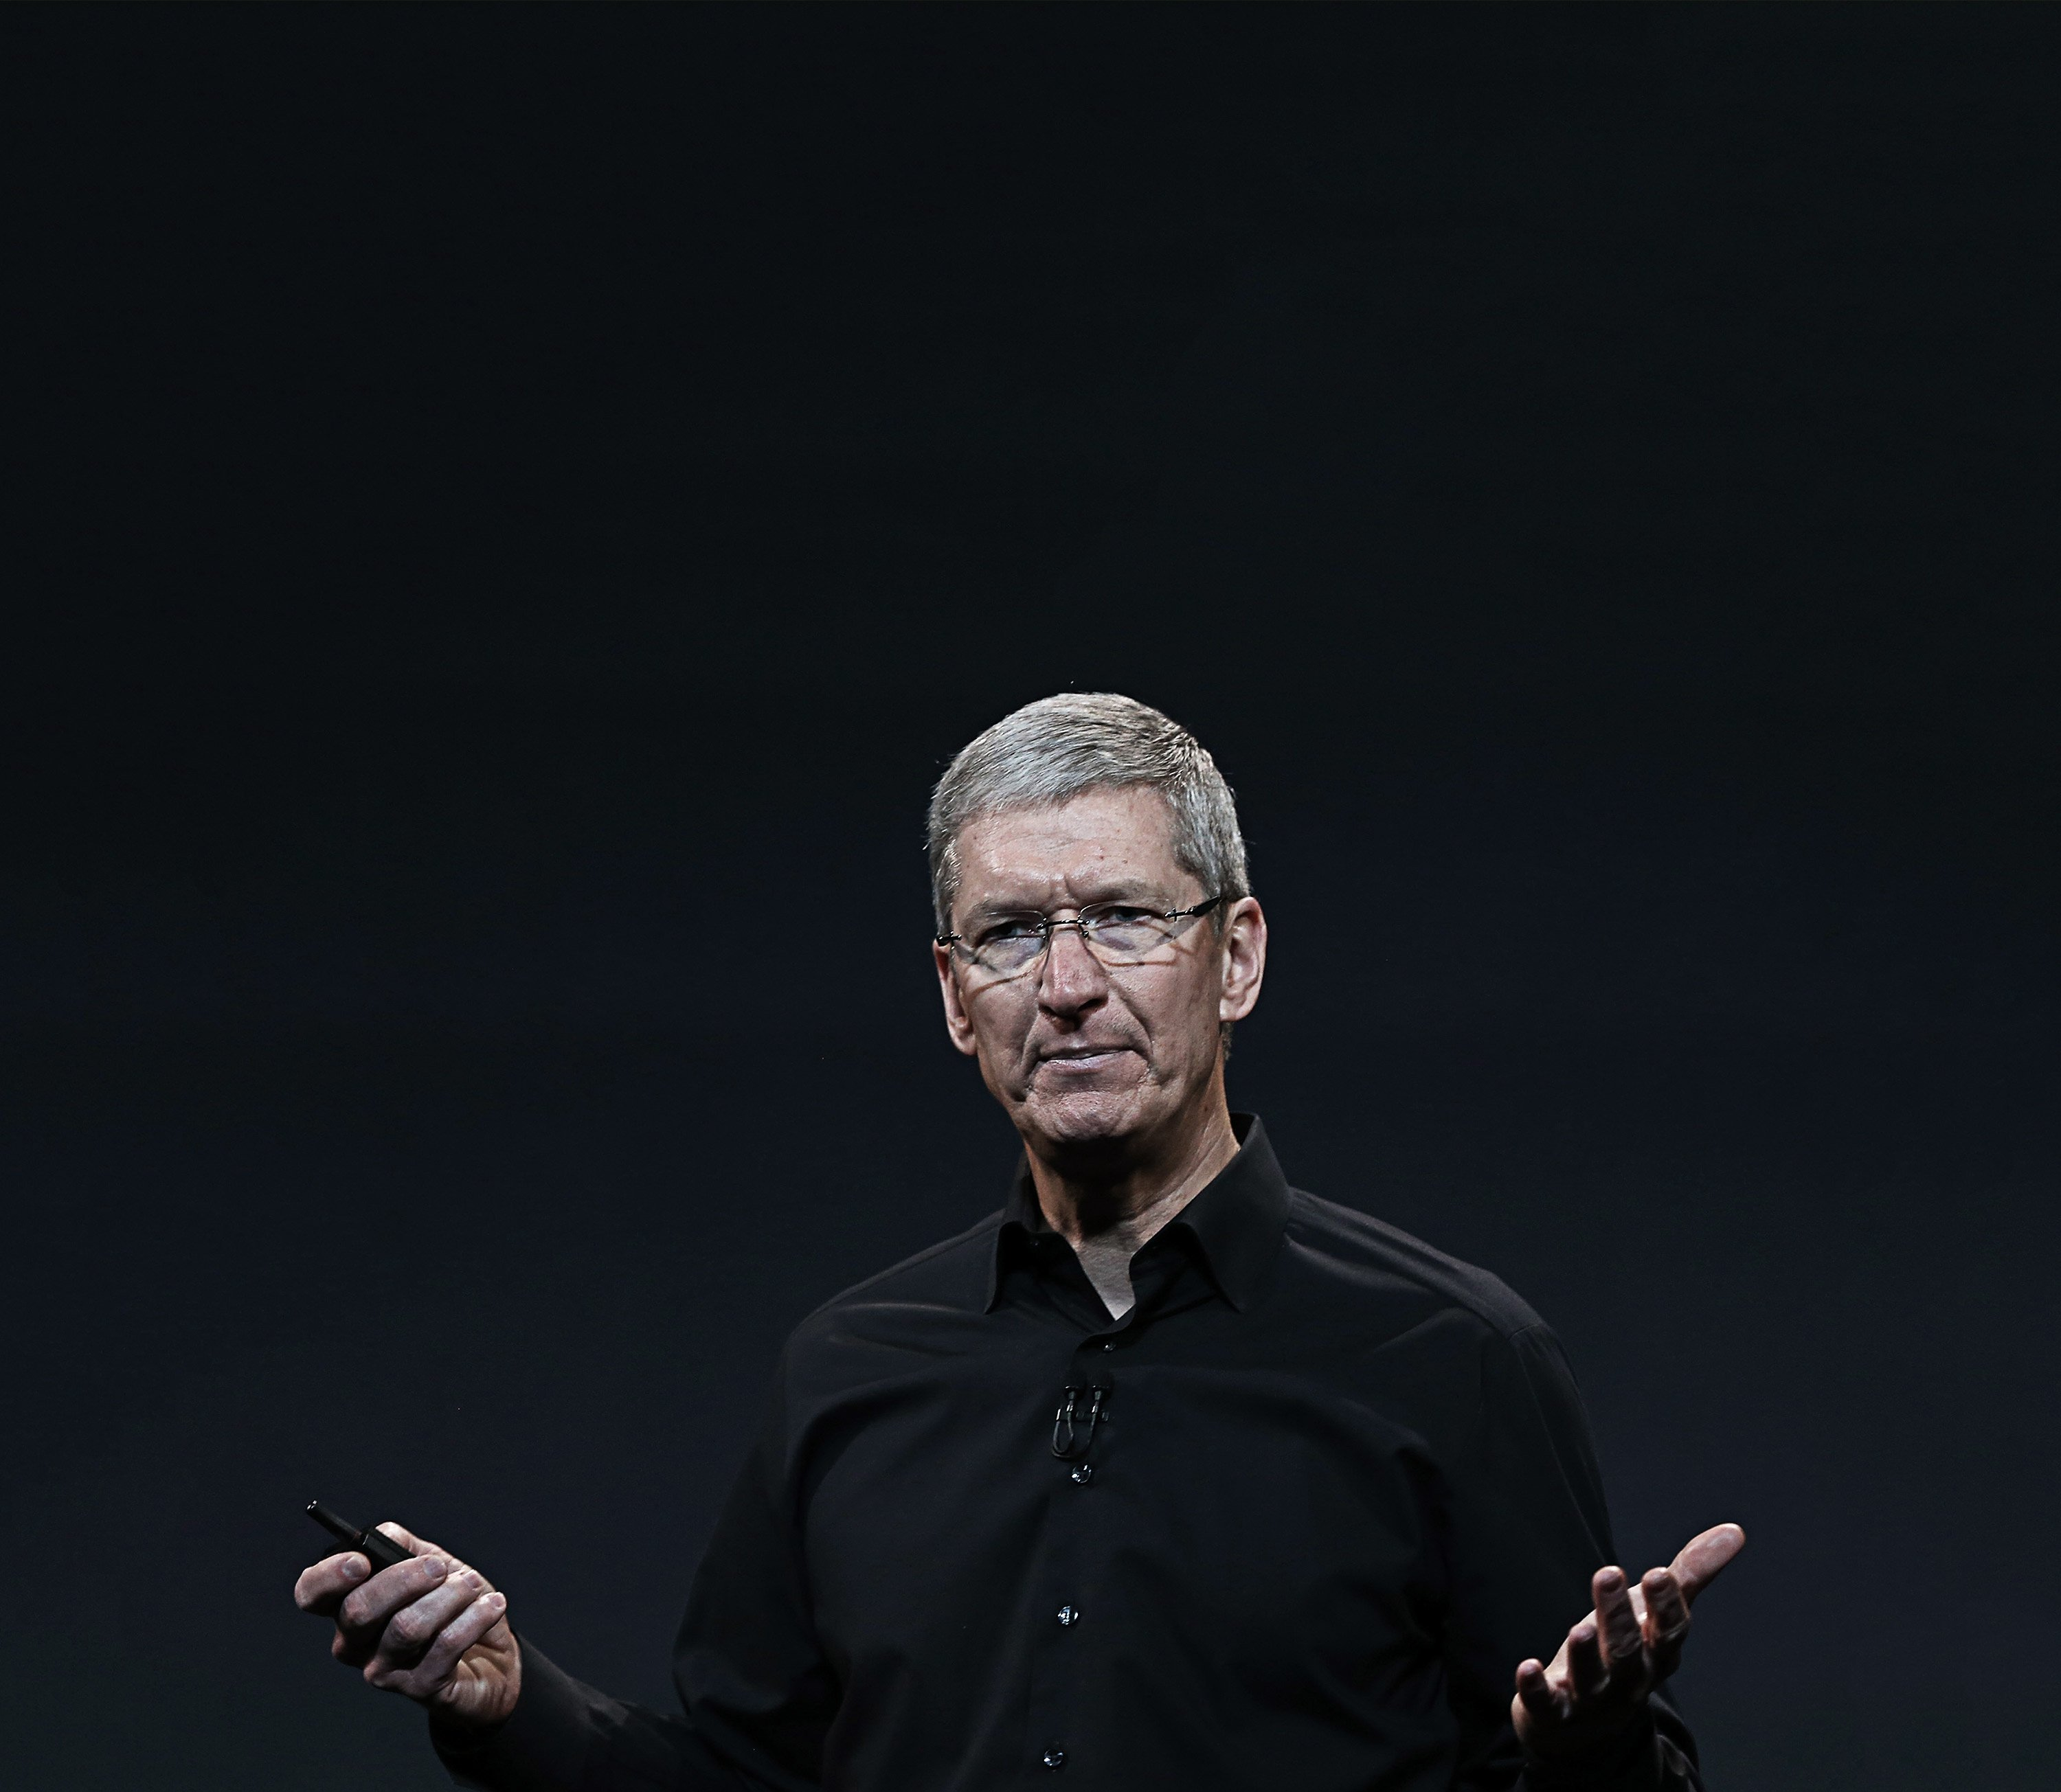 Apple CEO Tim Cook. courtesy of Apple.